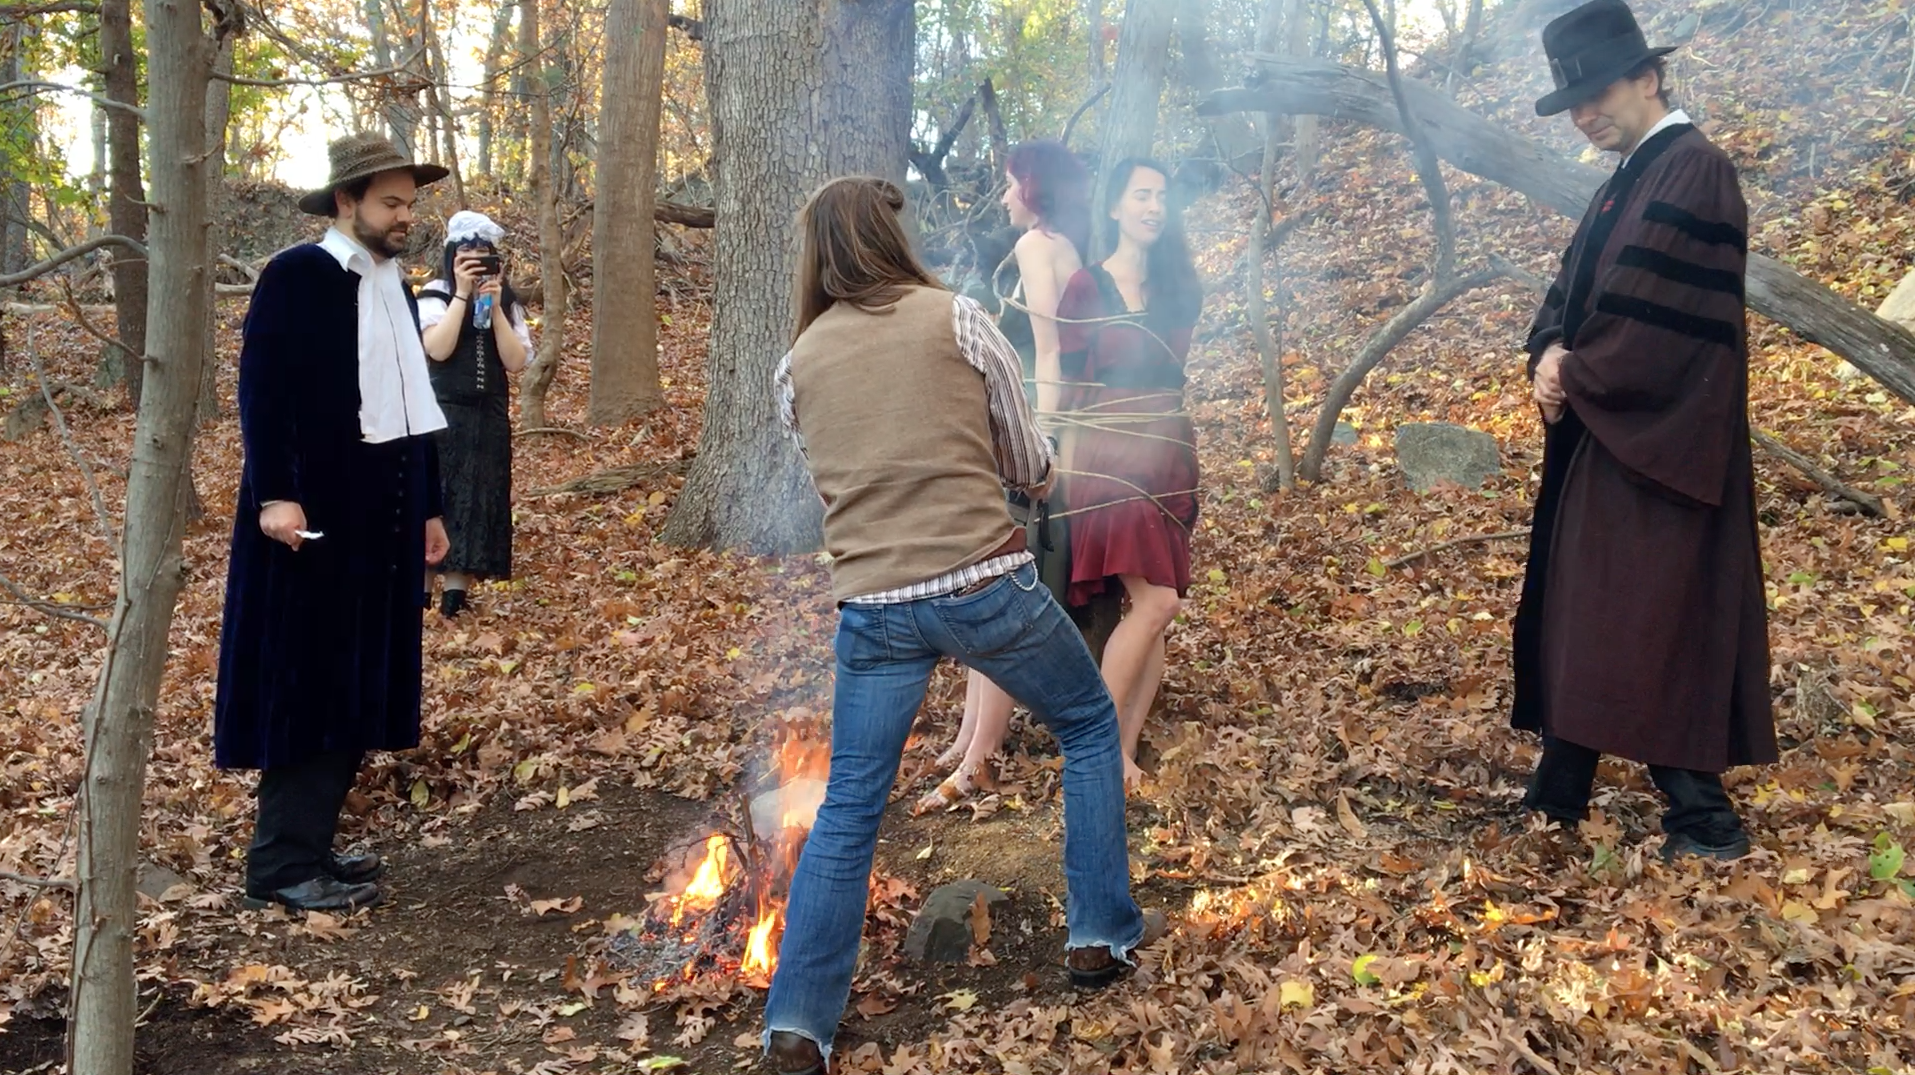 John Hartman of Reel Groovy Films on camera captures witches Geena Matuson (@geenamatuson) and Maya Simone burning at the stake. At back, Eve Xastur takes some photos while pilgrims Dawn Nightshade and Caleb Huntington bear witness.